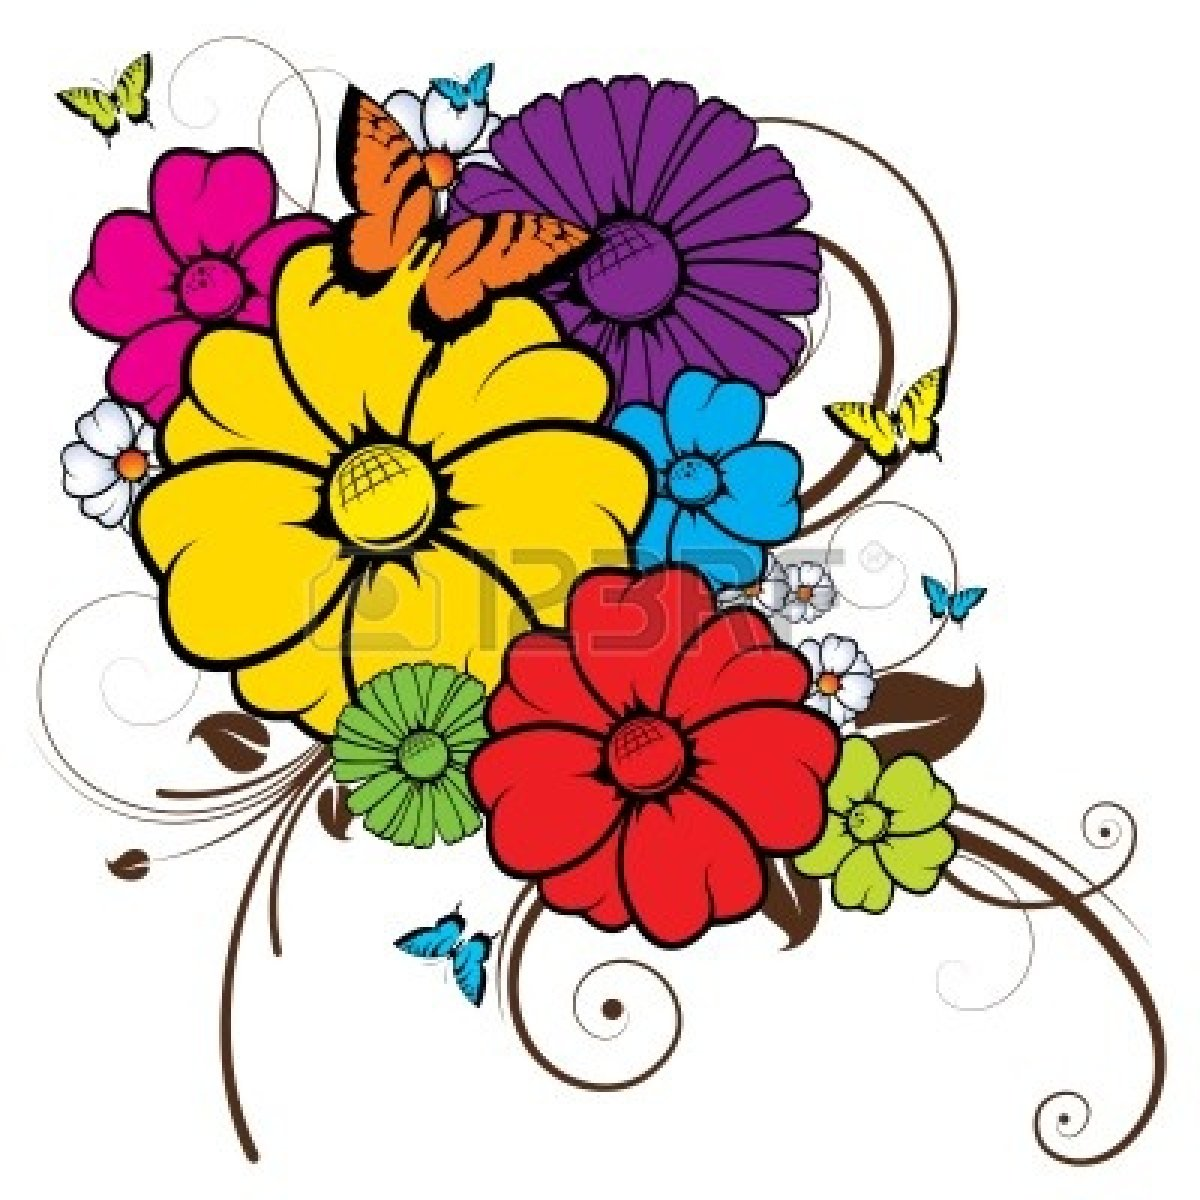 Floral clipart abstract Free Art Clip Panda Clipart